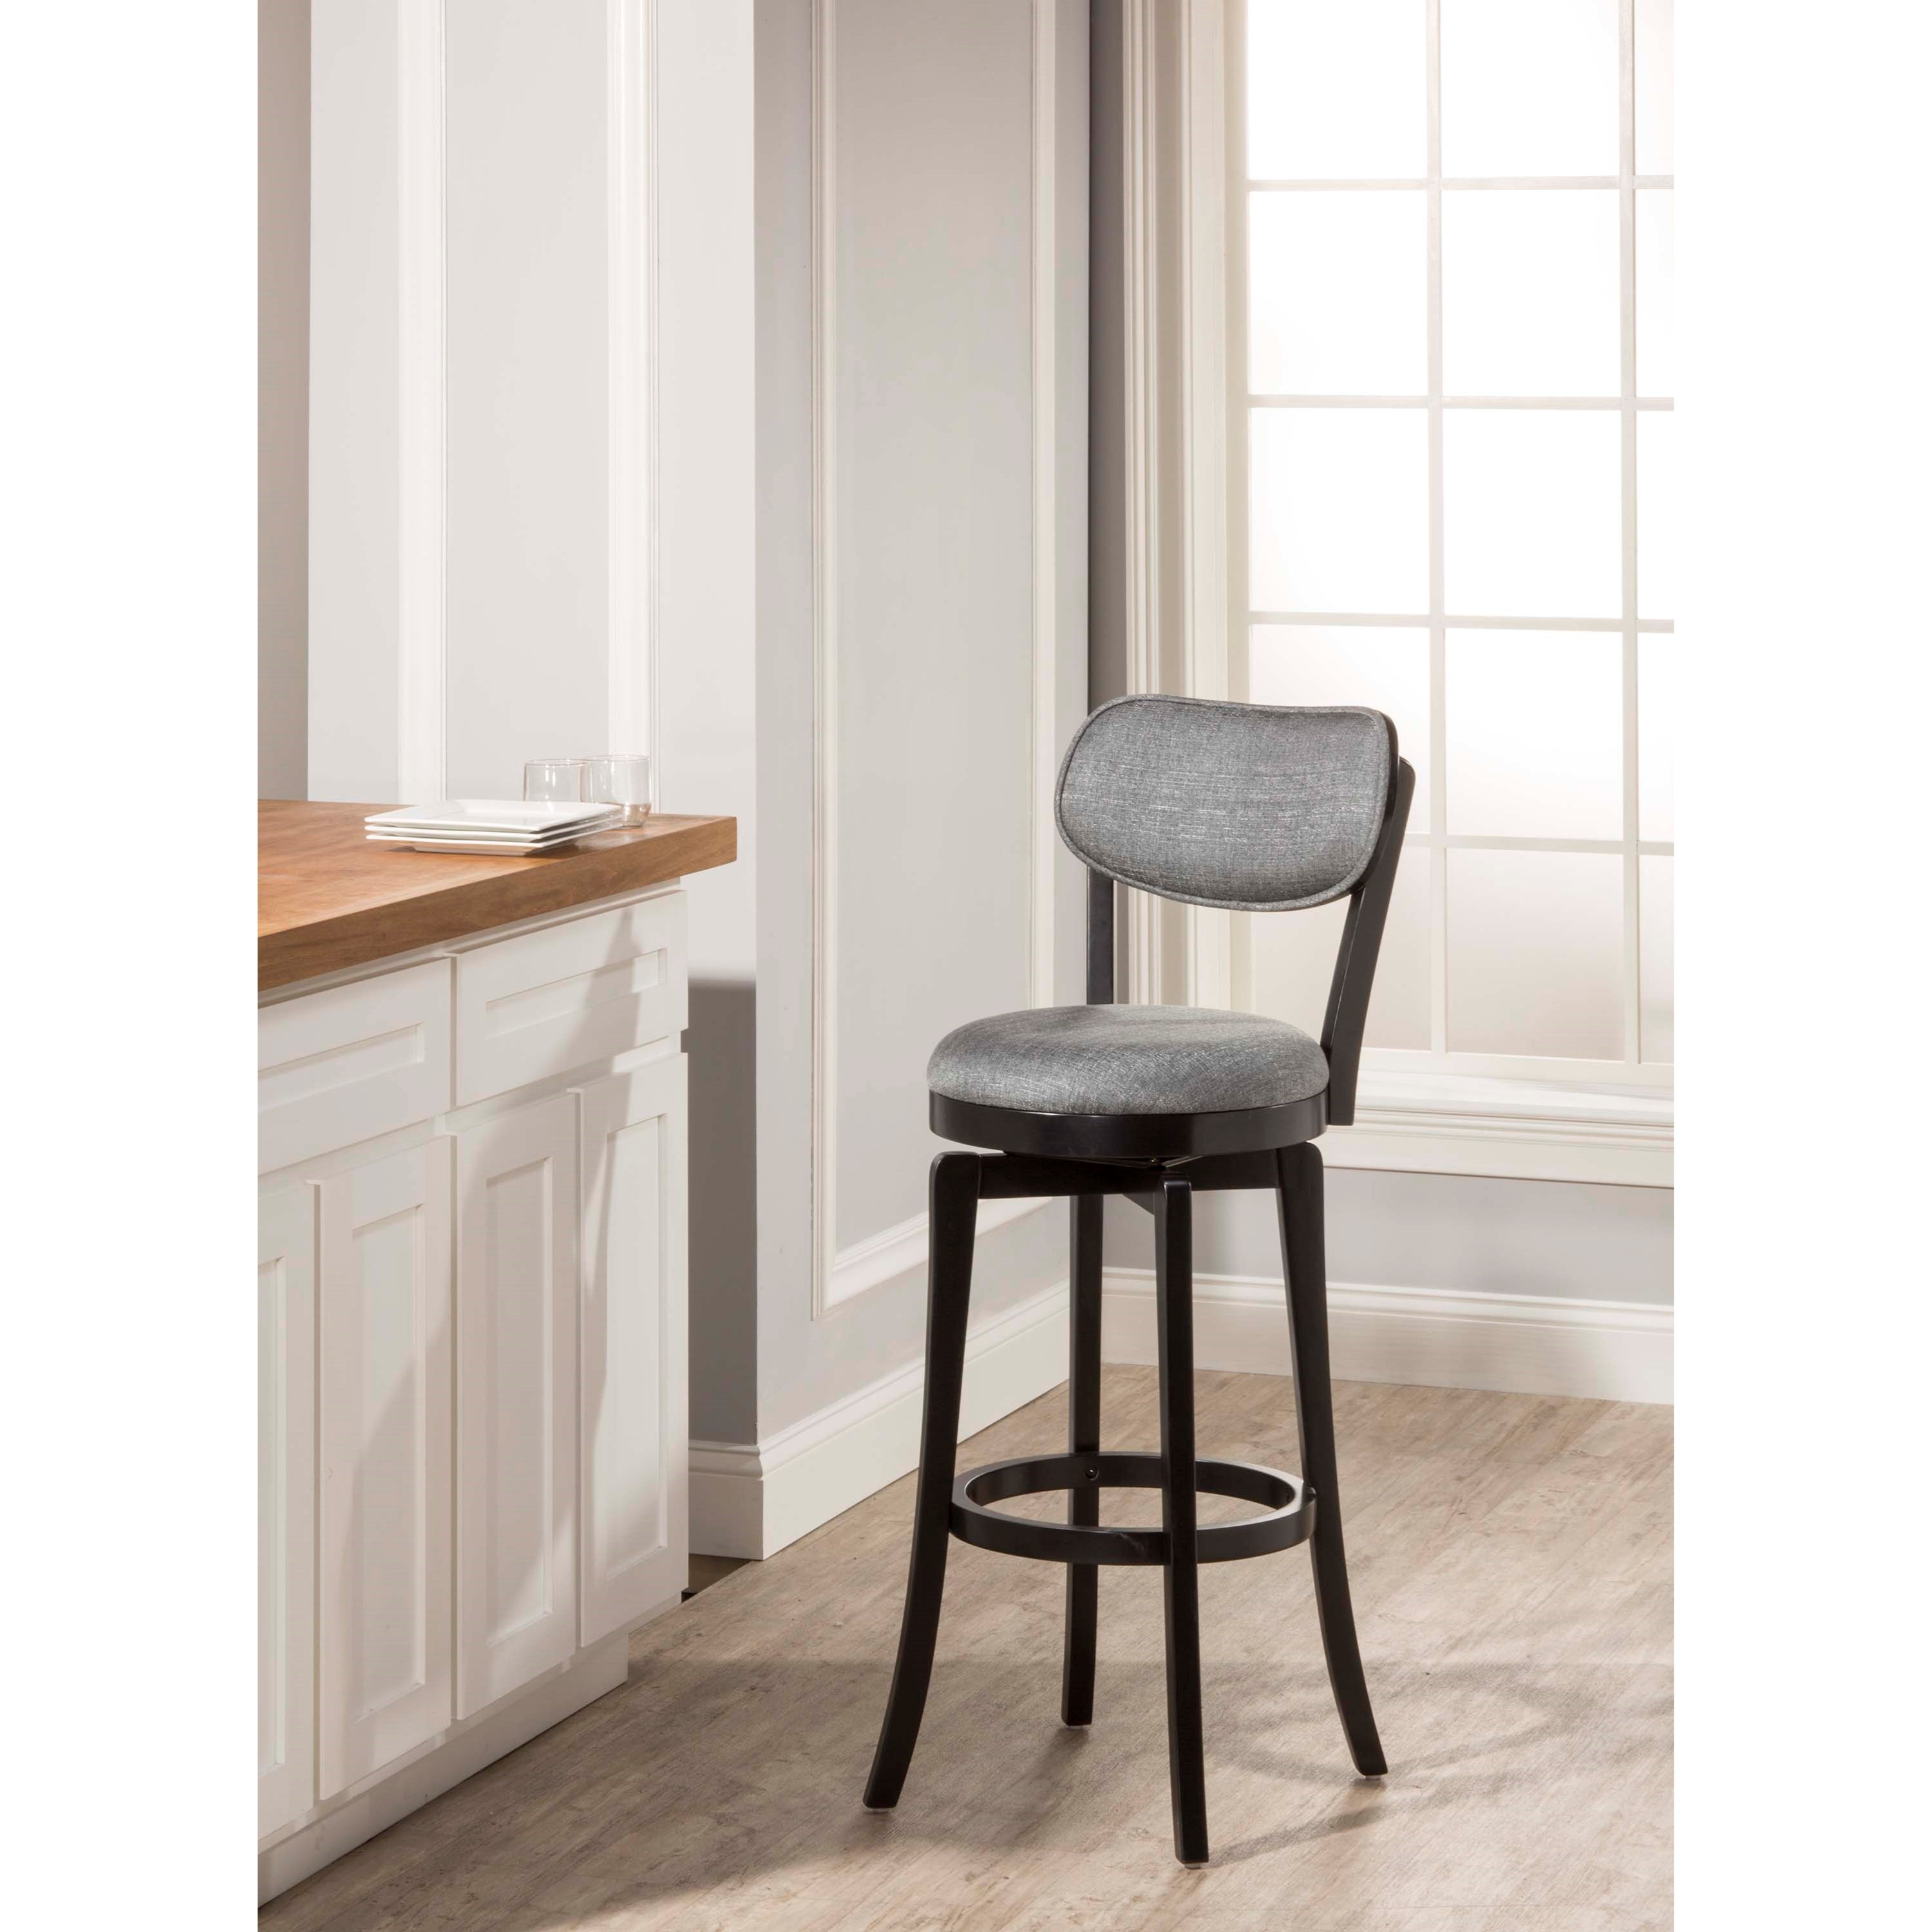 Hillsdale Wood Stools Swivel Counter Stool With Gray Full